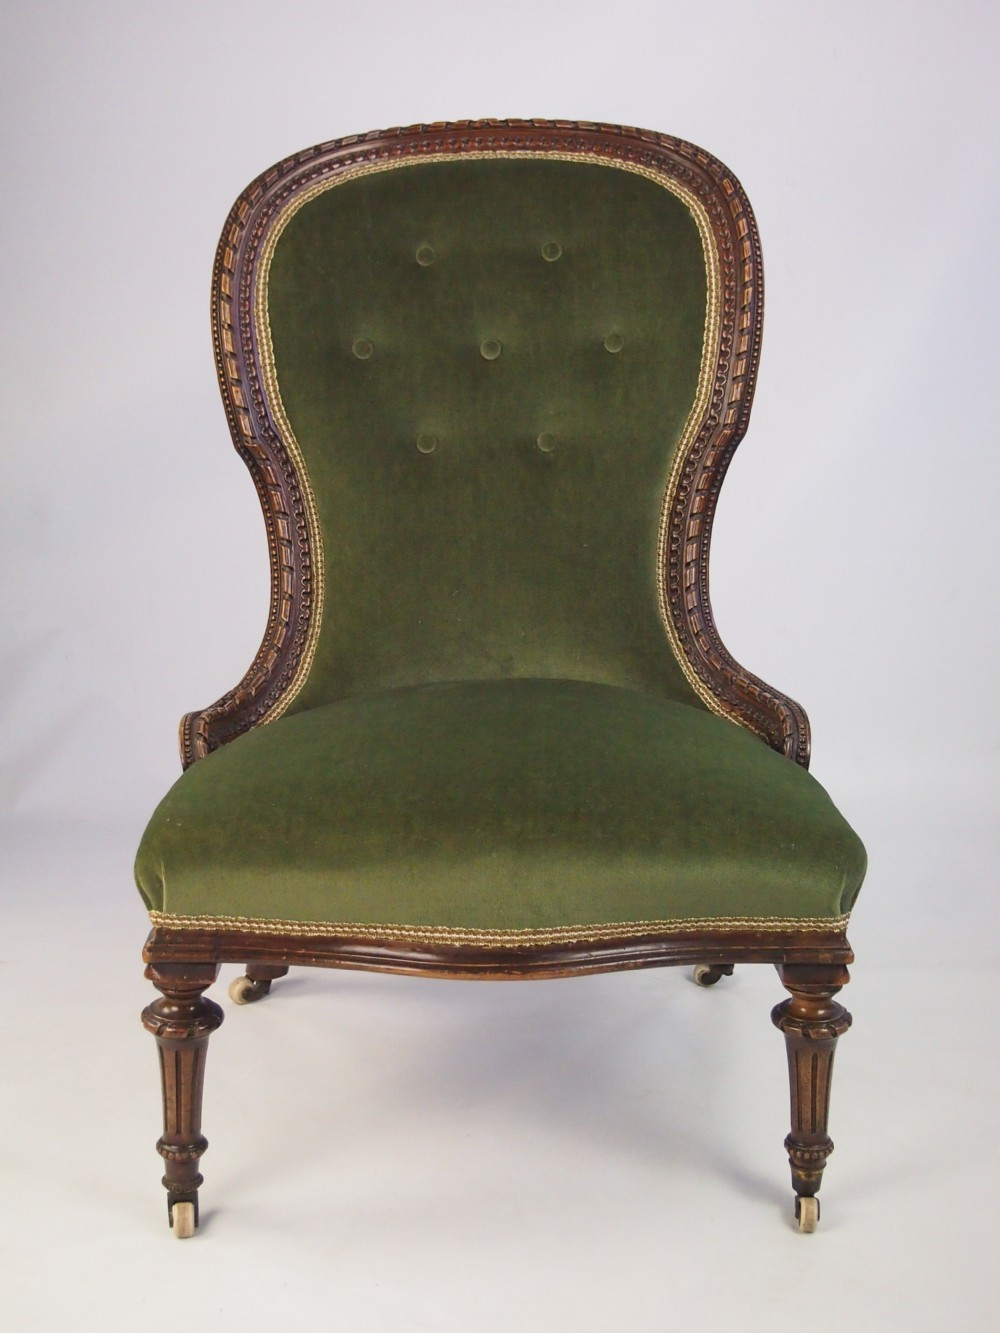 Antique Victorian Walnut Balloon Back Chair With Extensive